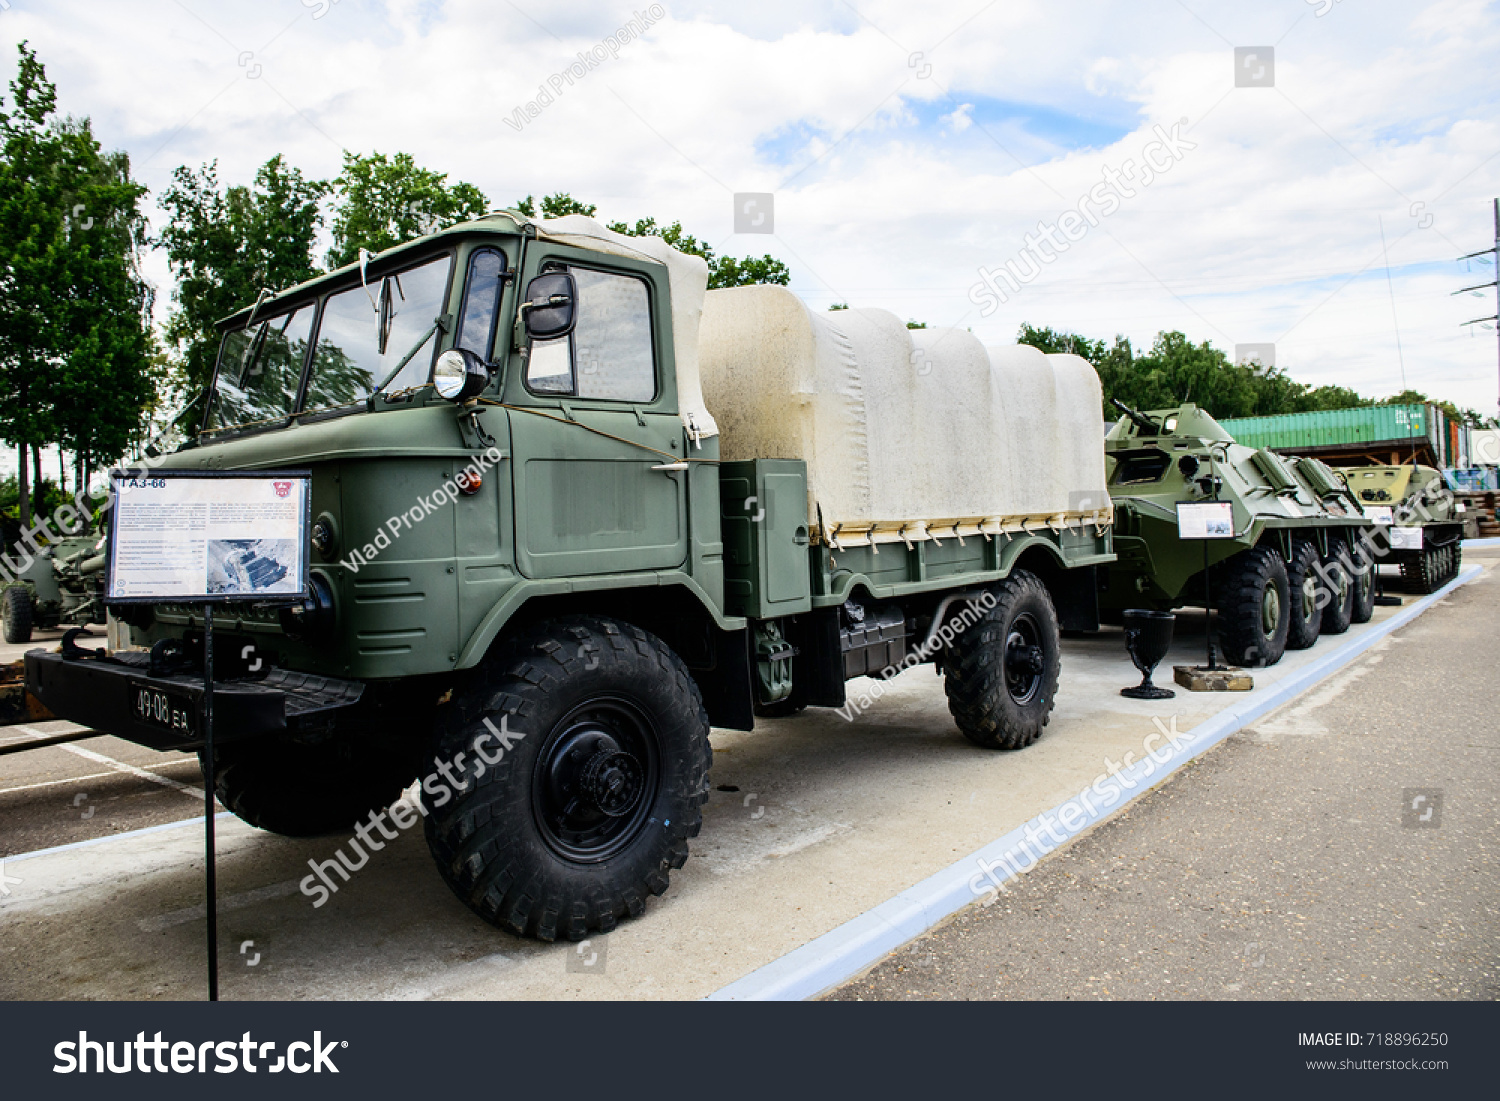 Putin will show: Vadim Zadorozhny Museum of Technology - Military equipment and weapons - street (many photos)